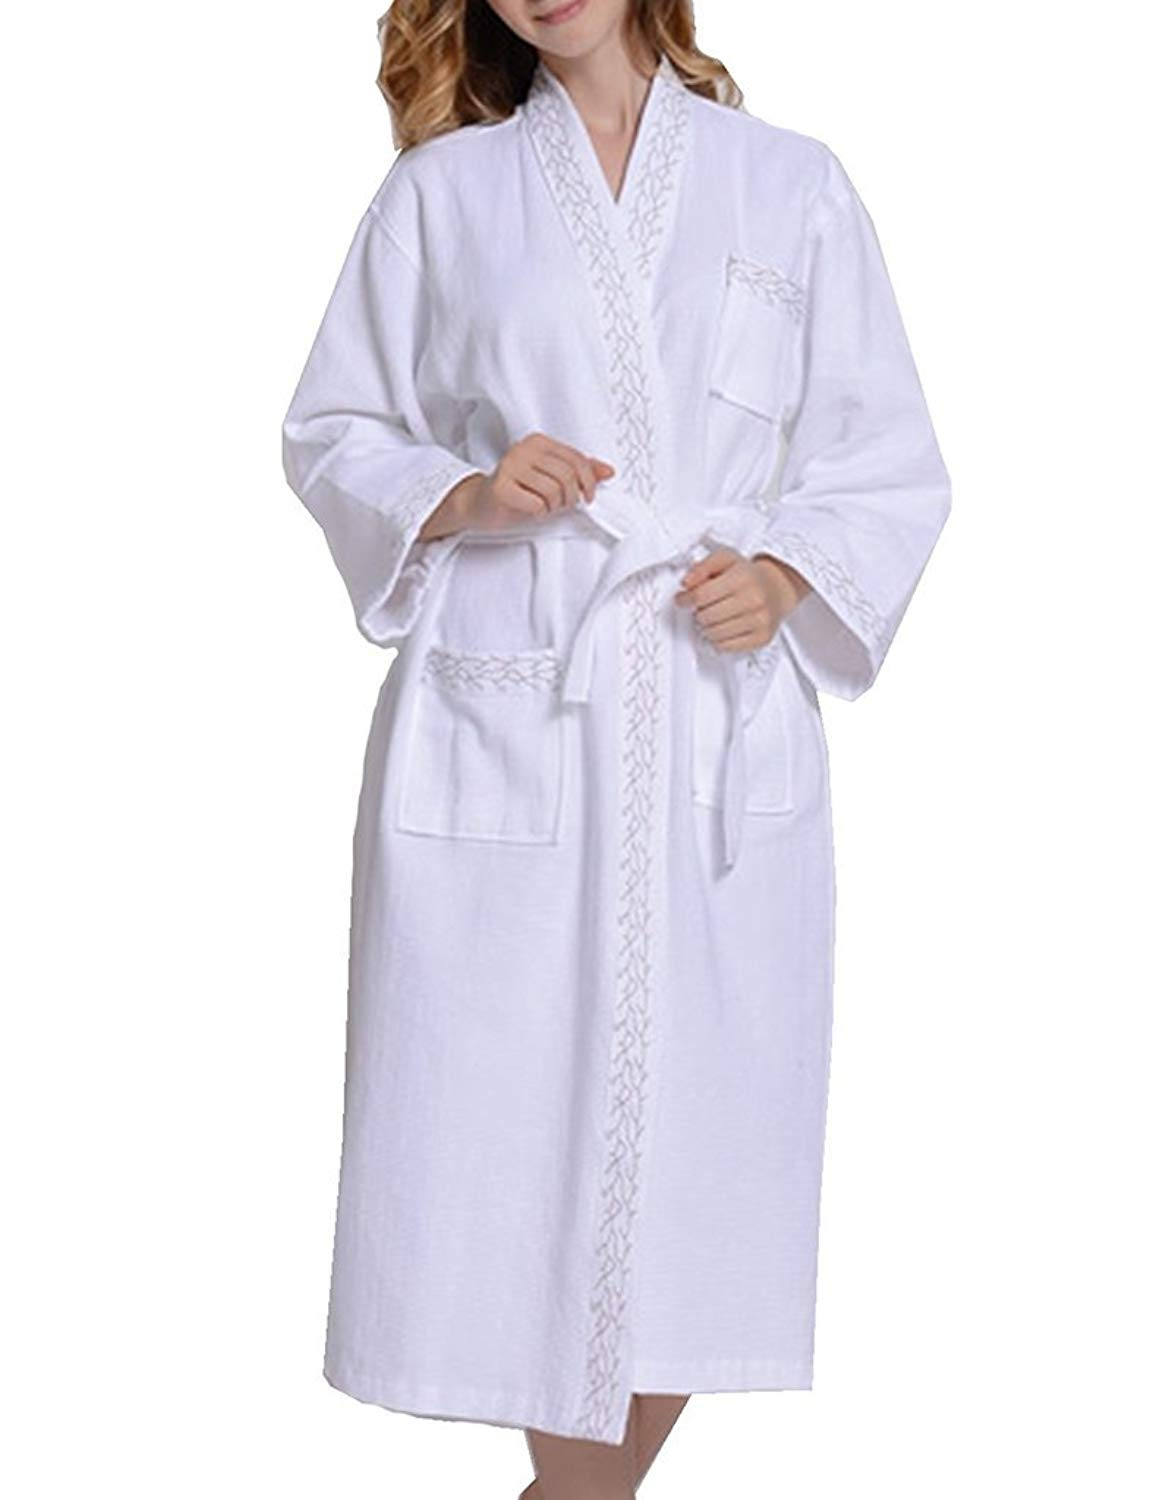 5560ea69fcb6d Get Quotations · Fortuning s JDS Luxury Embroidery Pattern Cotton Bath Robes  Dressing Gowns For Women   Men